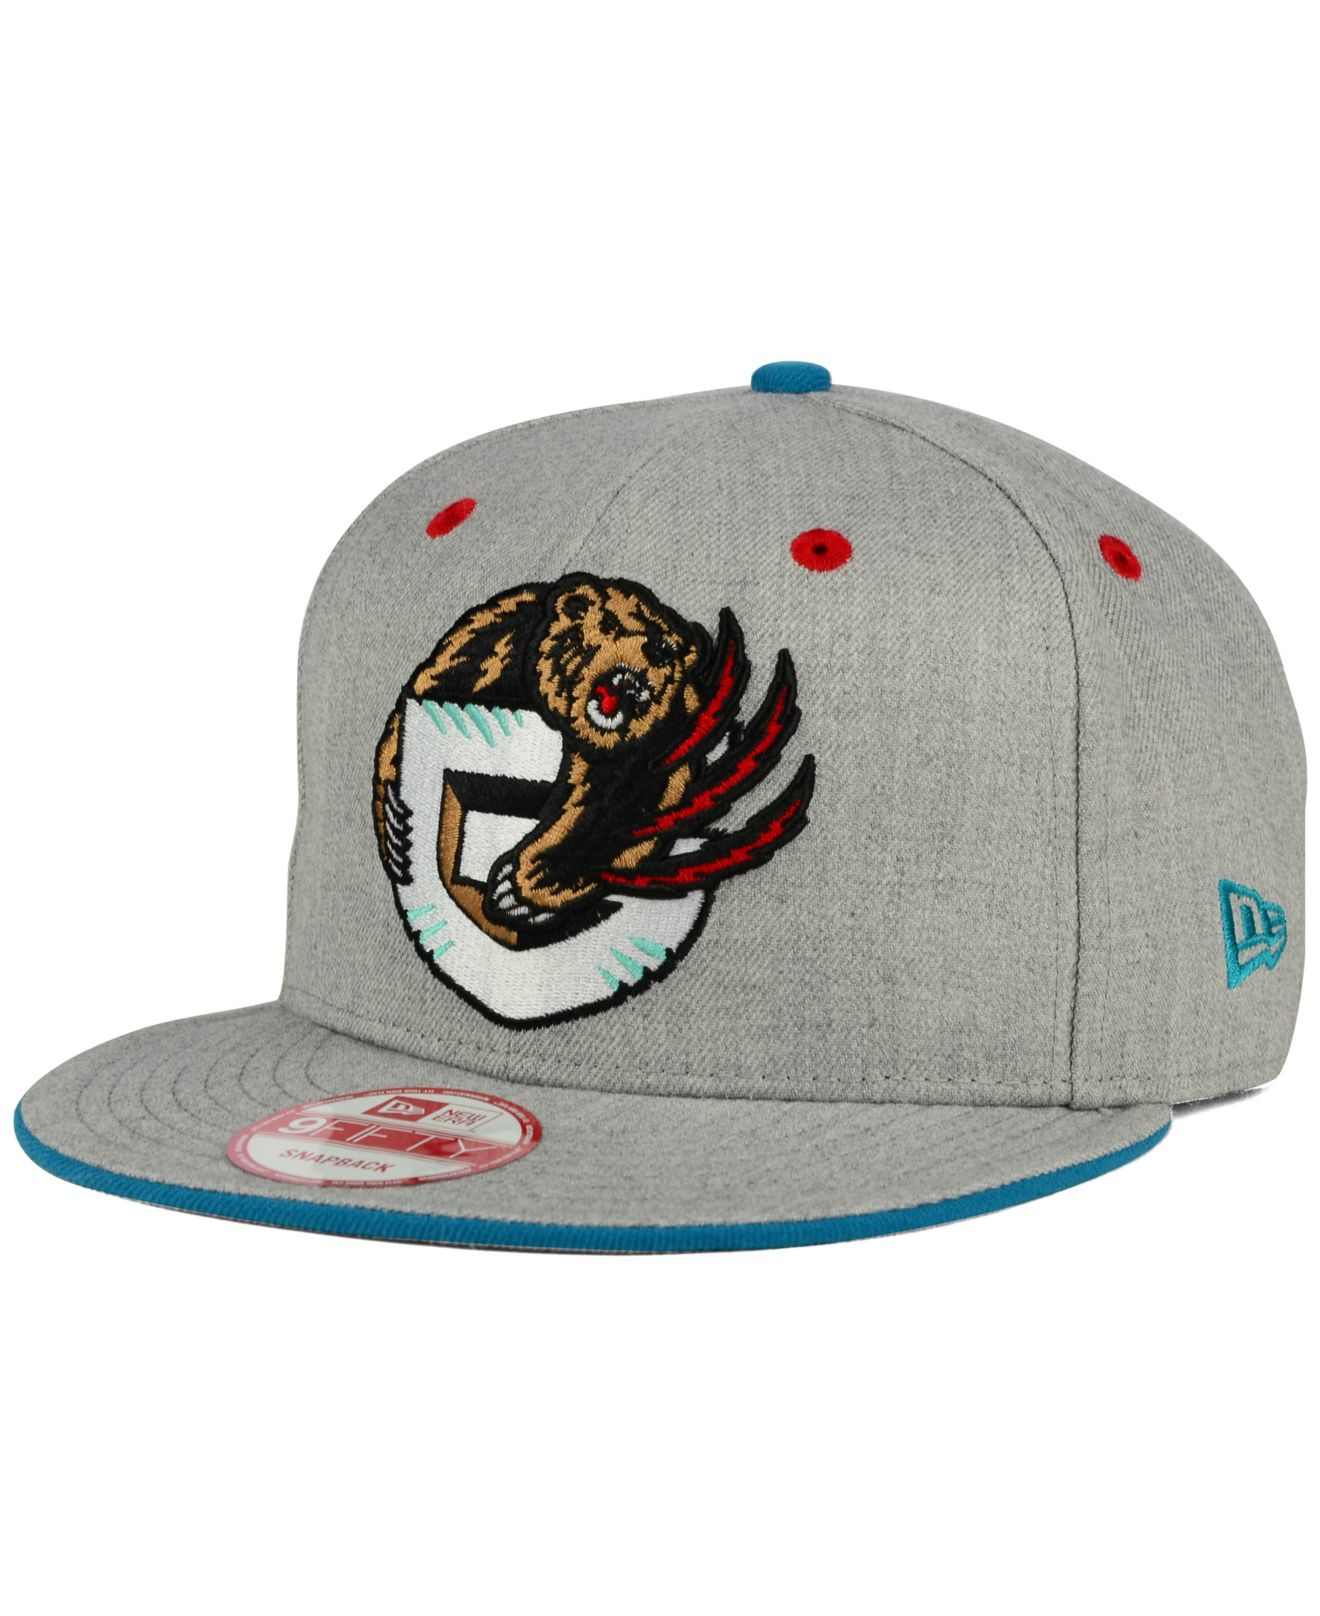 23a7805d540 Lyst - KTZ Vancouver Grizzlies Heather 9fifty Snapback Cap in Gray ...